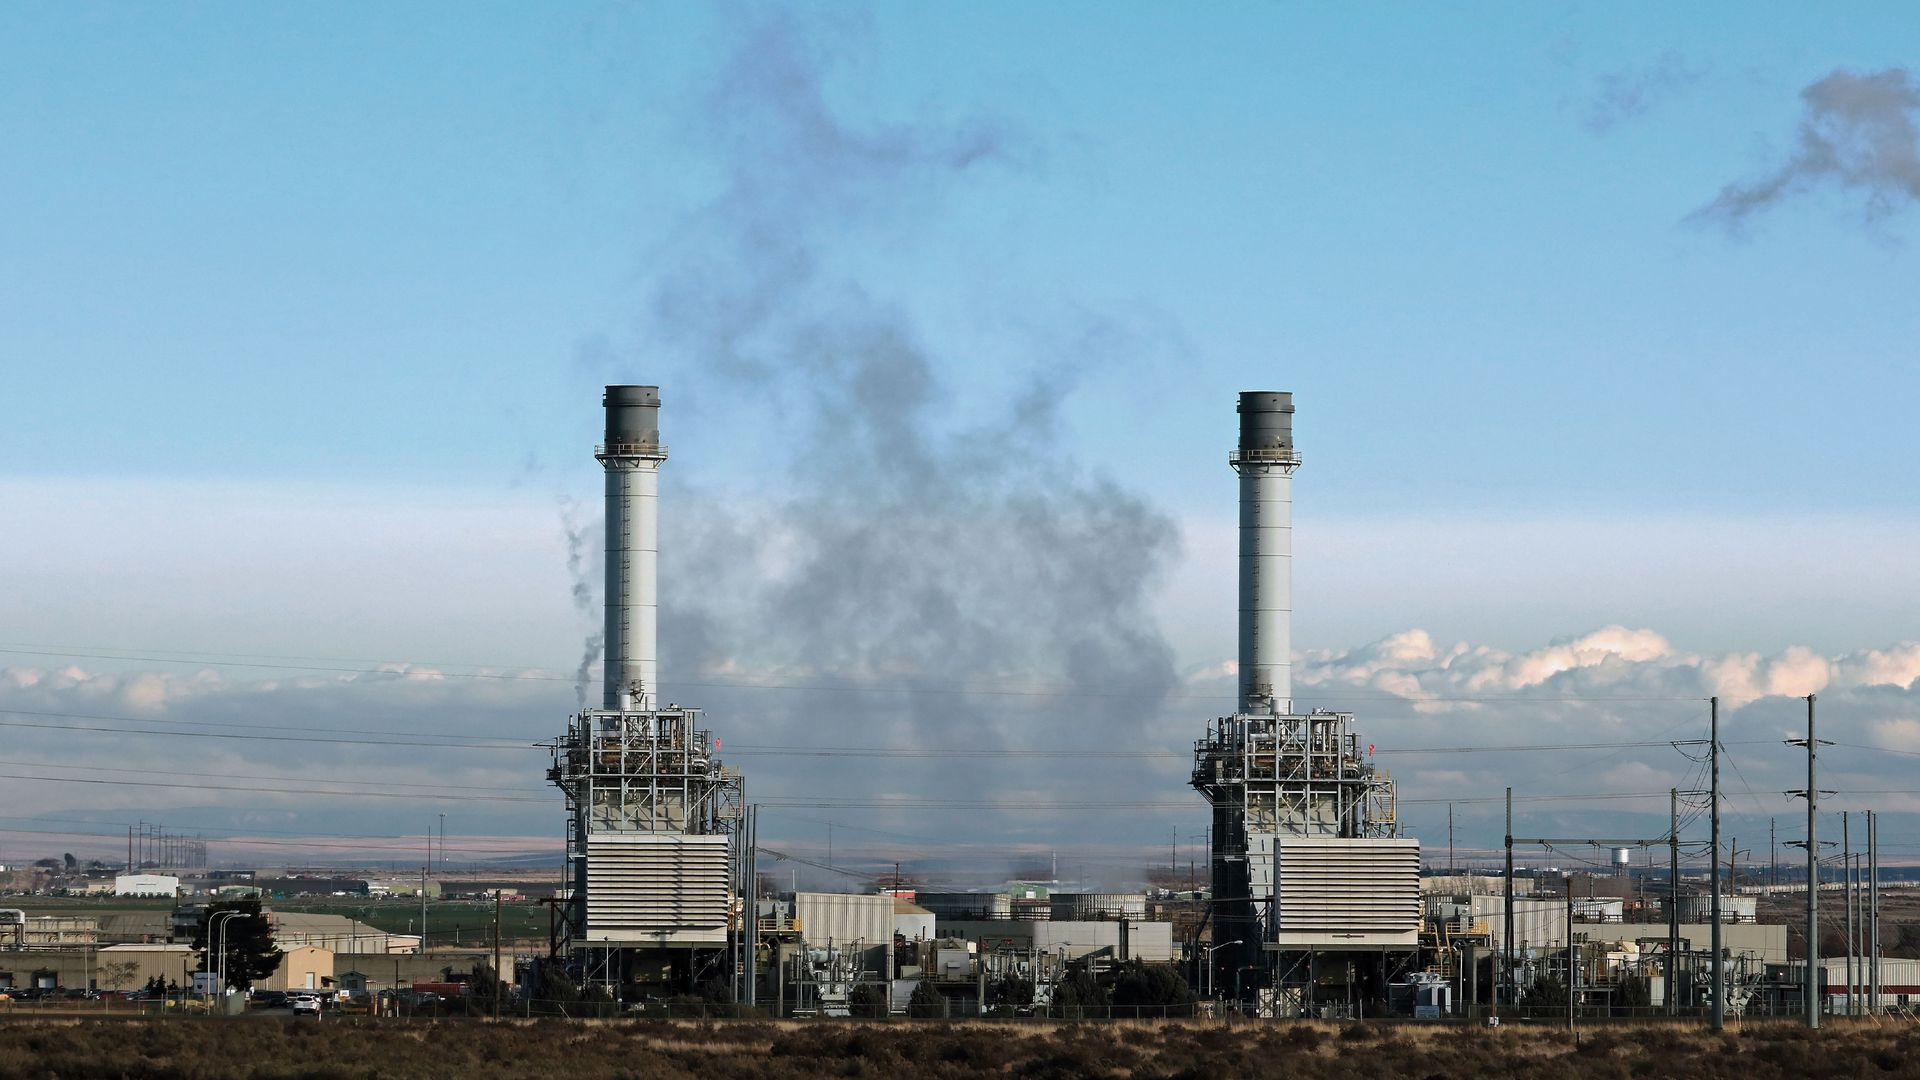 Two power plants give off smoke